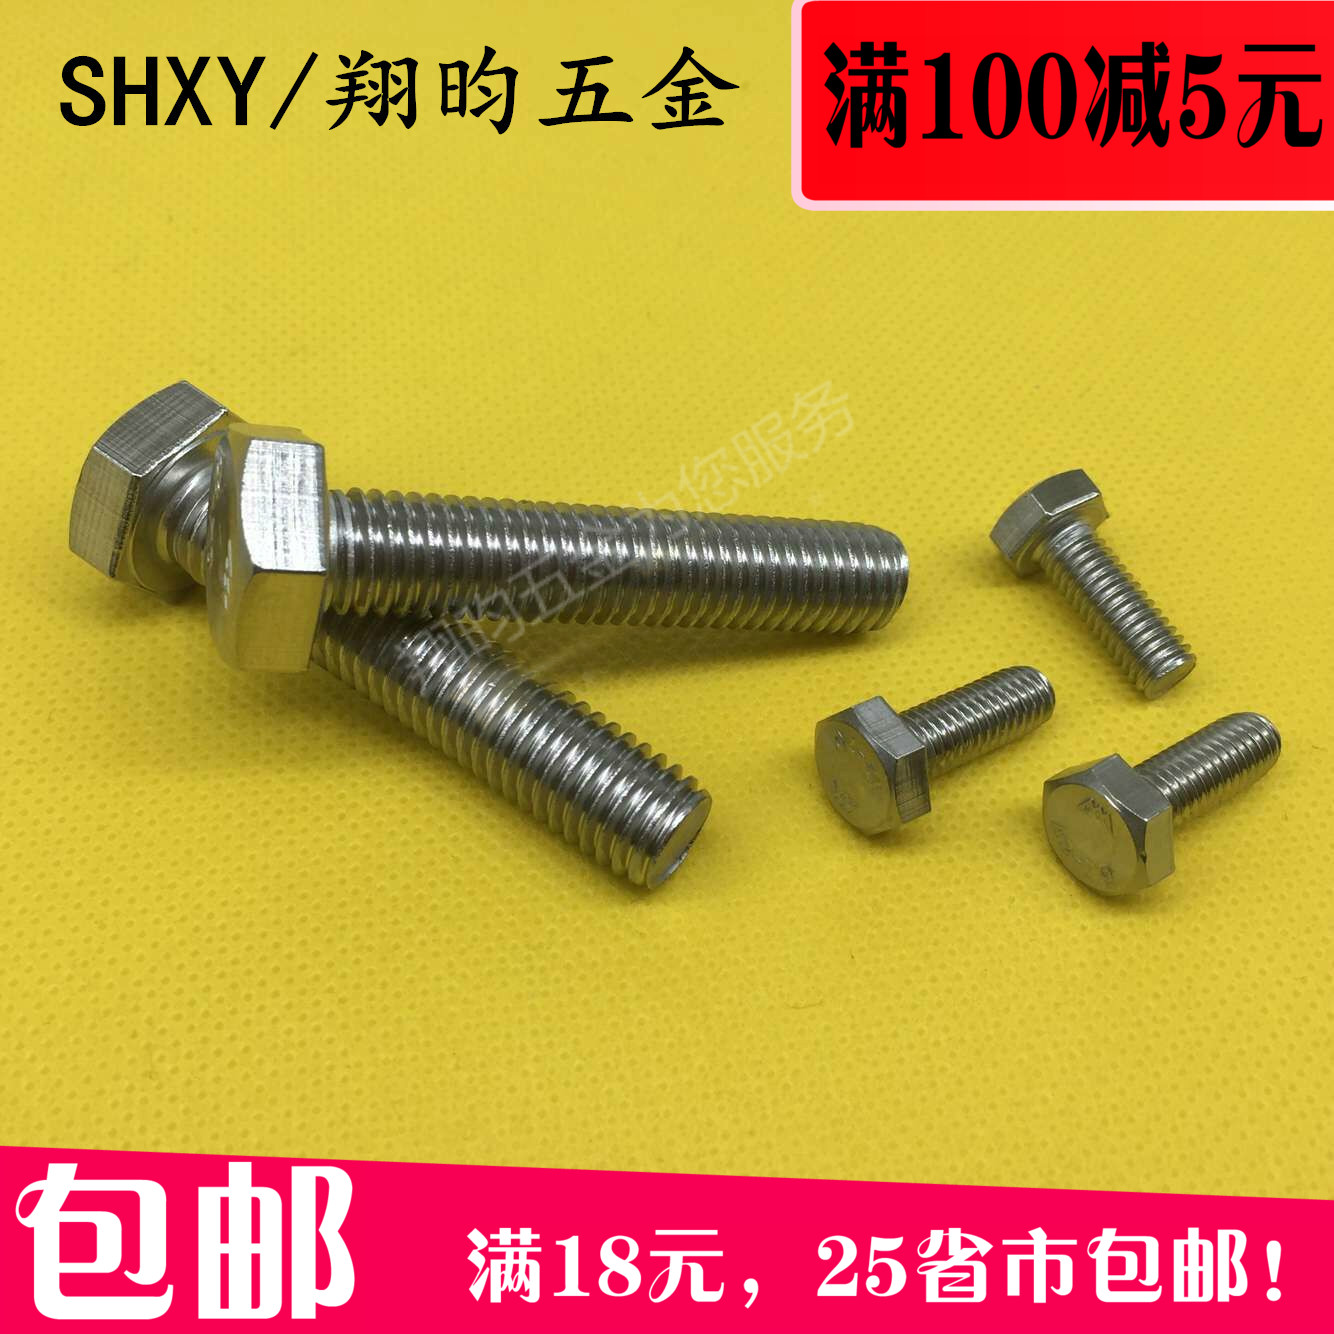 Promotional authentic 304 stainless steel hex screws din933 hex bolts/screws m3 m4